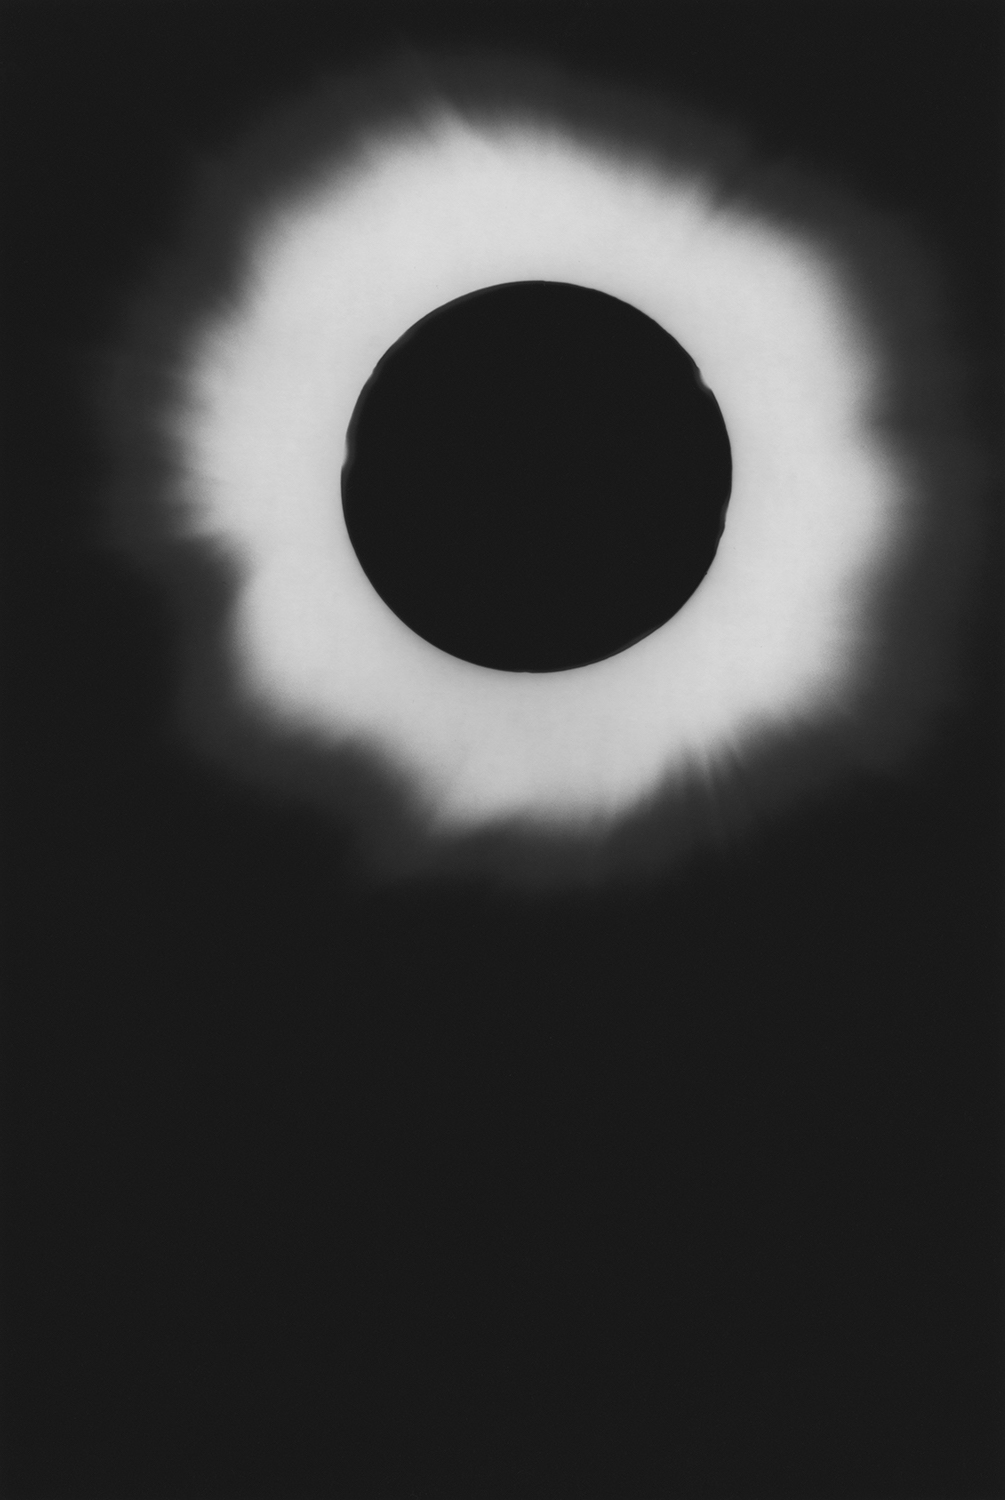 The Last Total Eclipse of the Sun in the 20th century  (1999) from  T he Last Cosmology    (2015) by Kikuji Kawada, published by MACK    mackbooks.co.uk